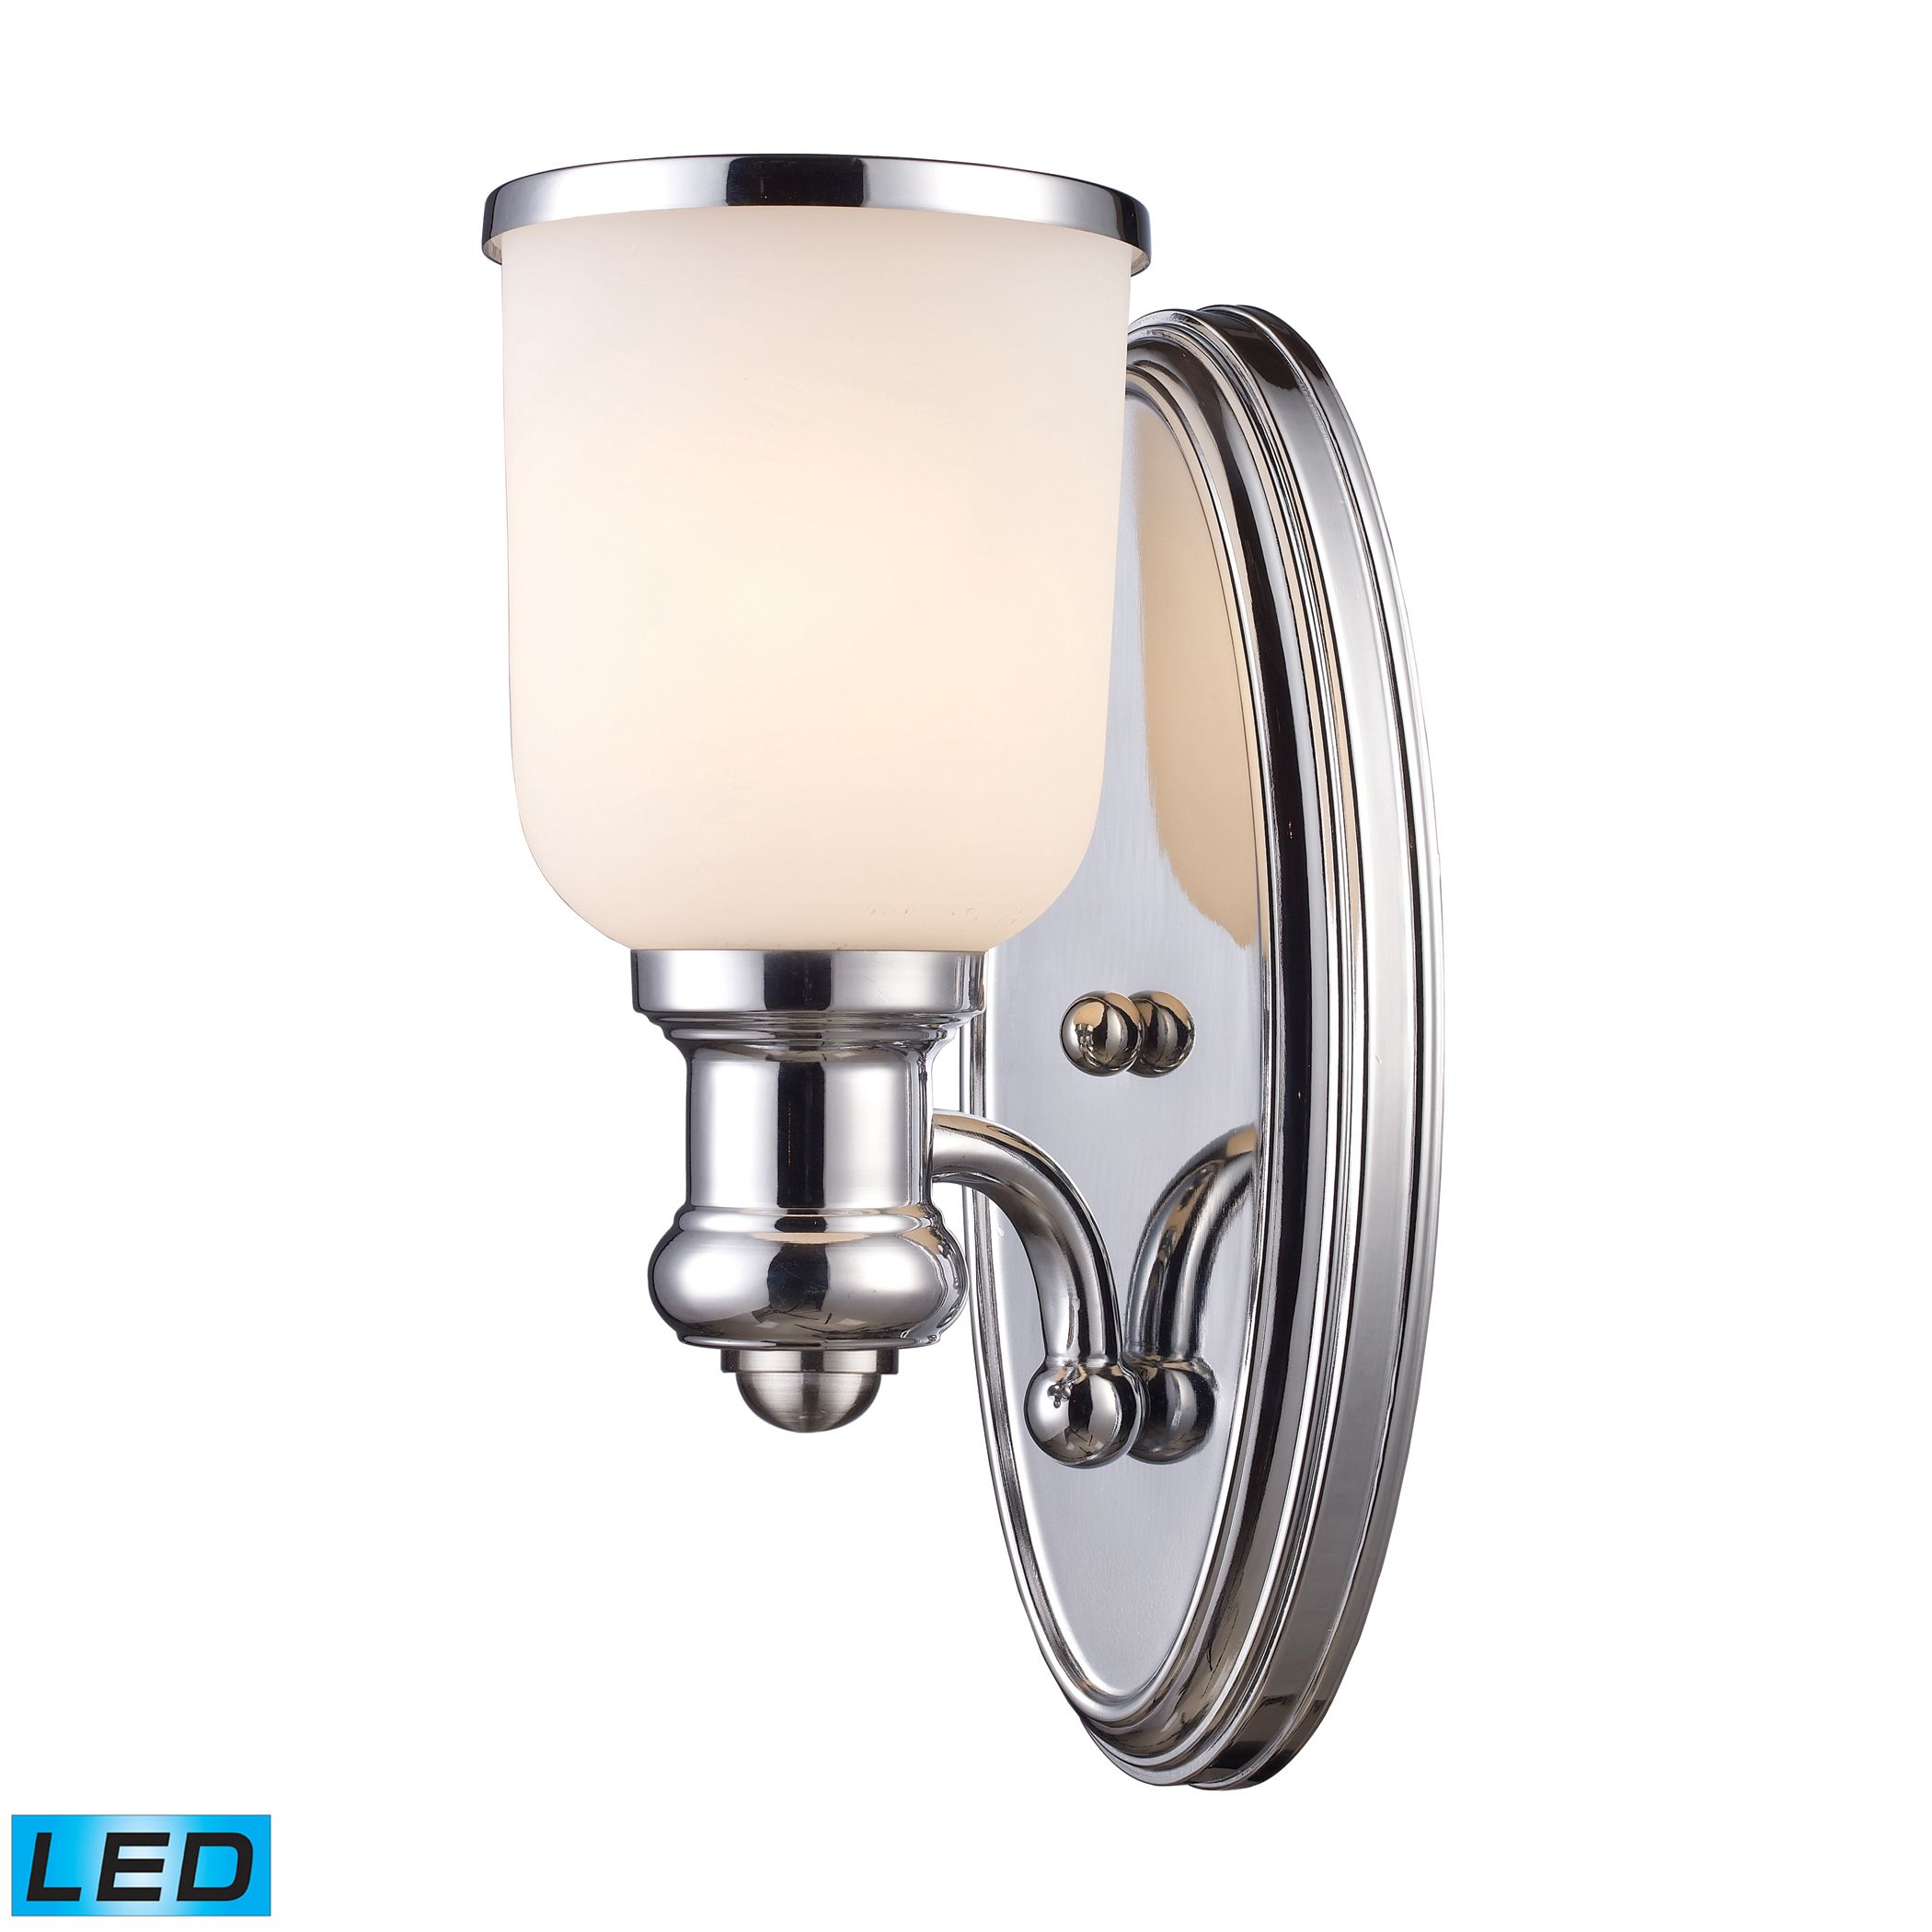 Brooksdale LED 1-Light Sconce in Polished Chrome